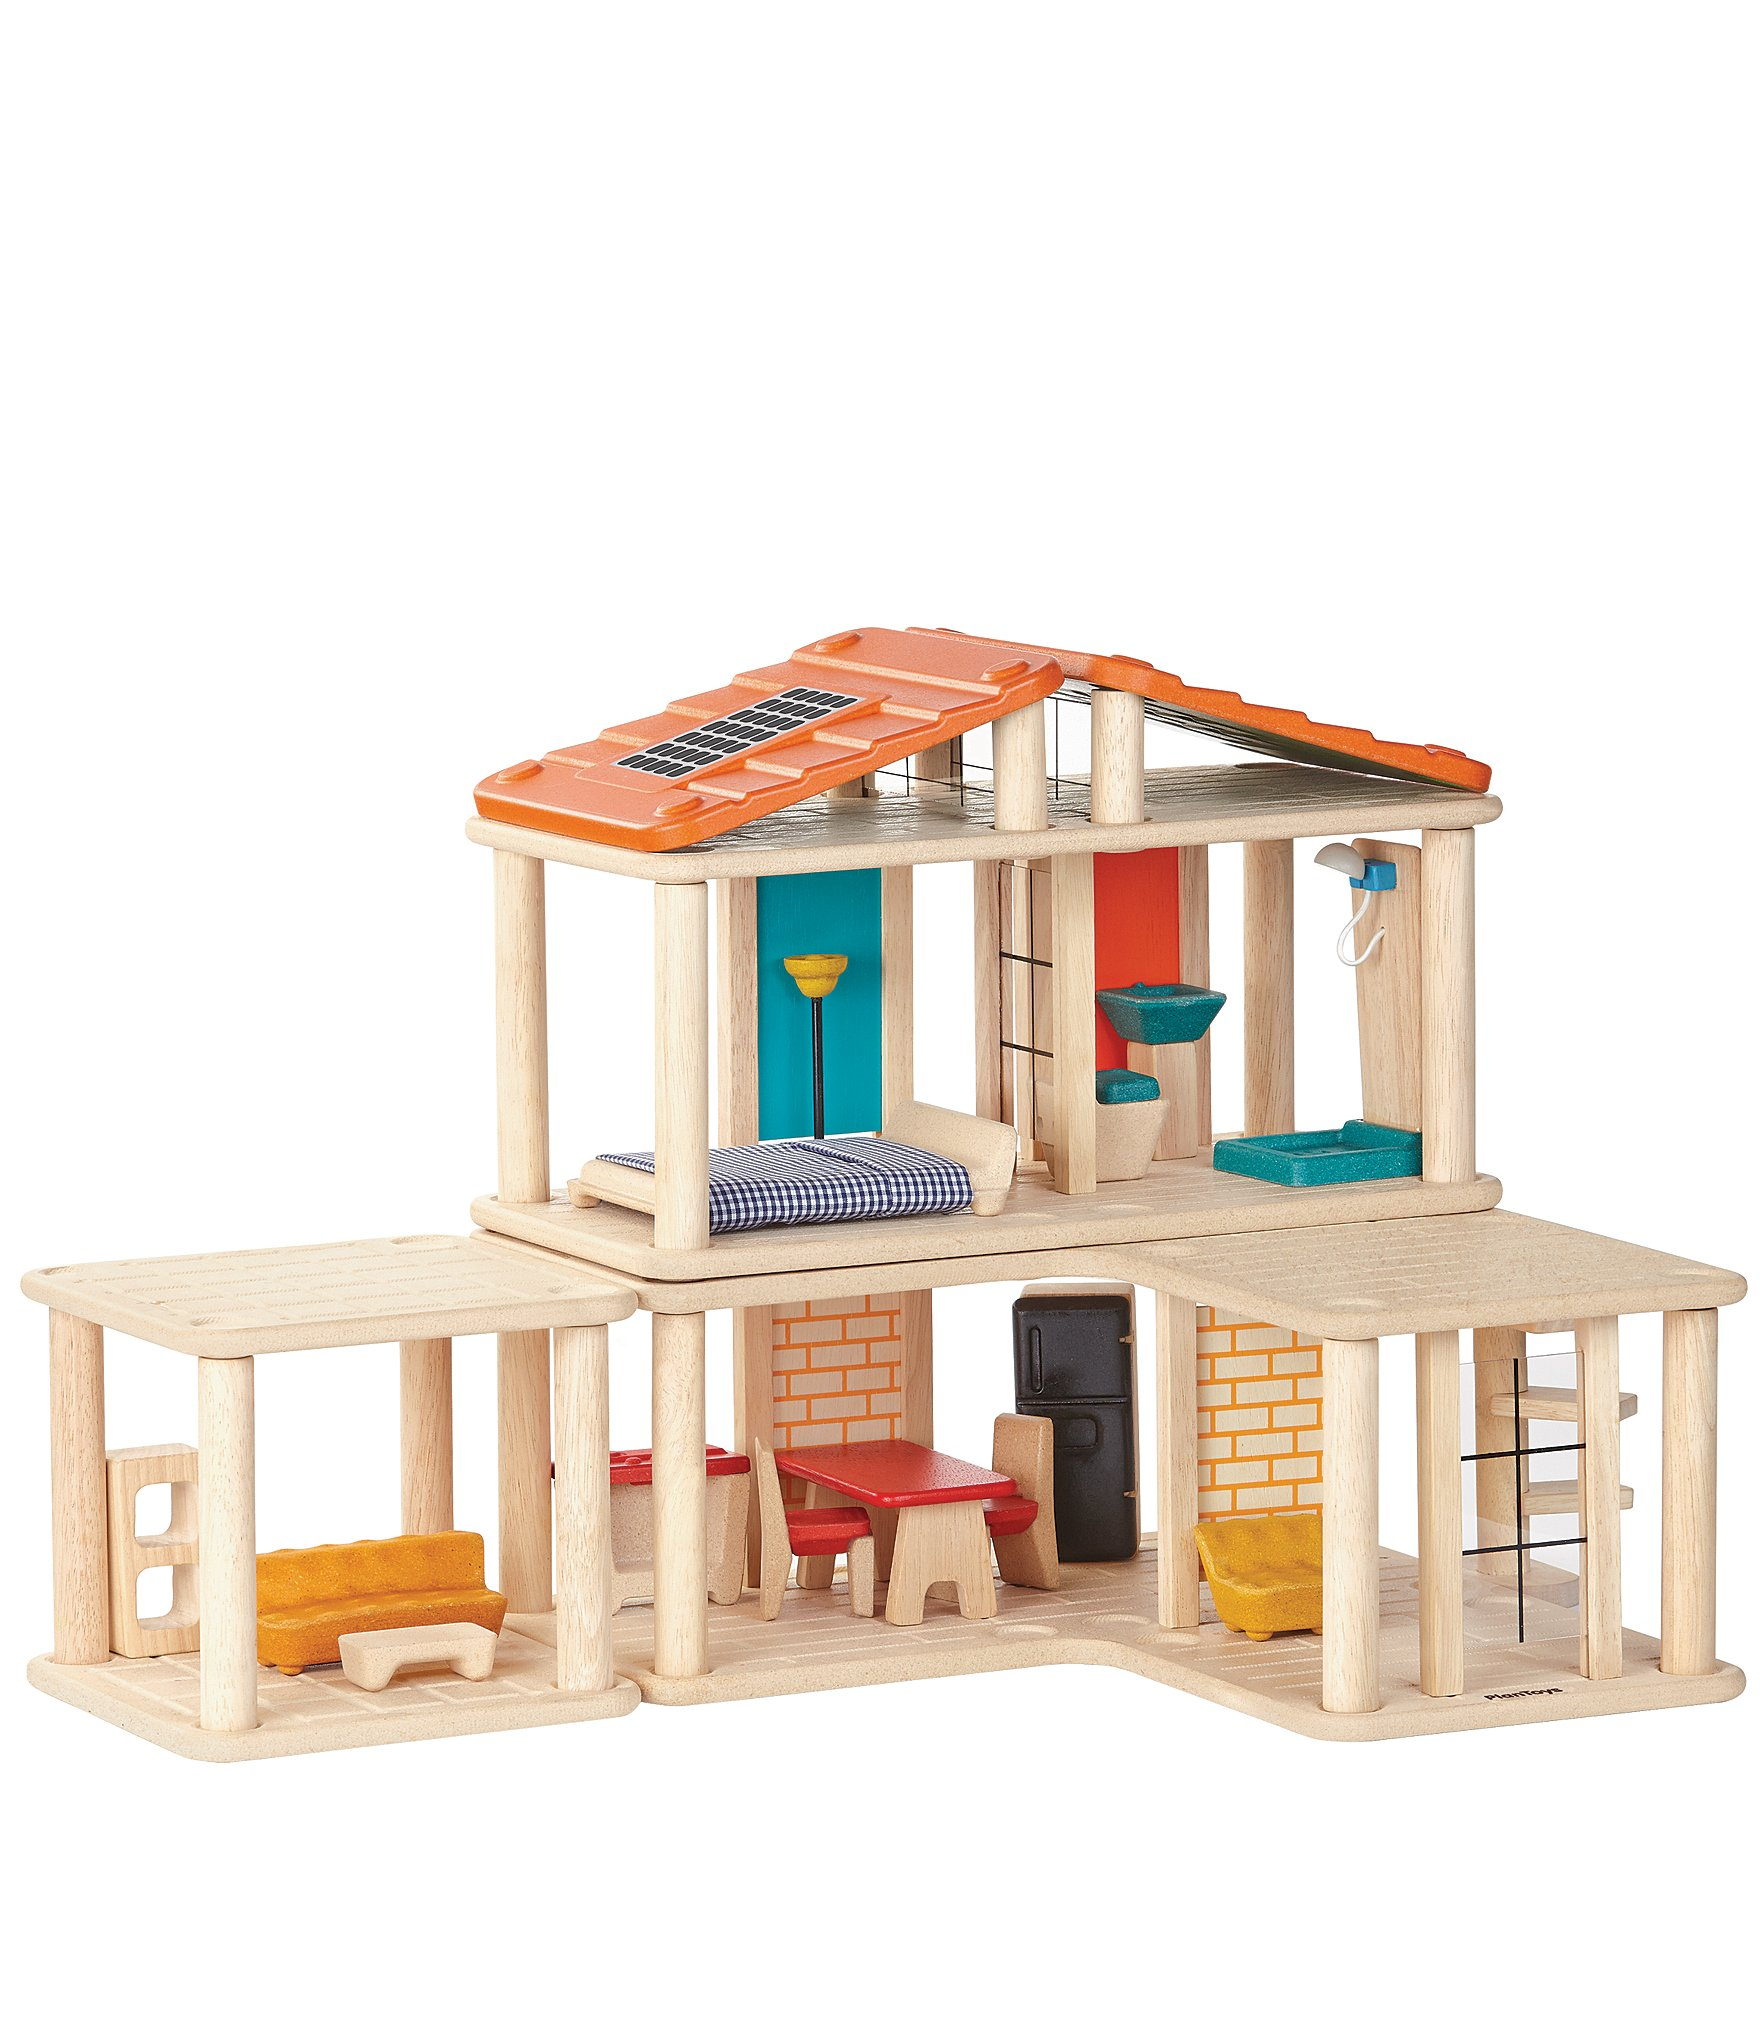 Dillards Furniture Brands: Plan Toys Creative Playhouse With Furniture